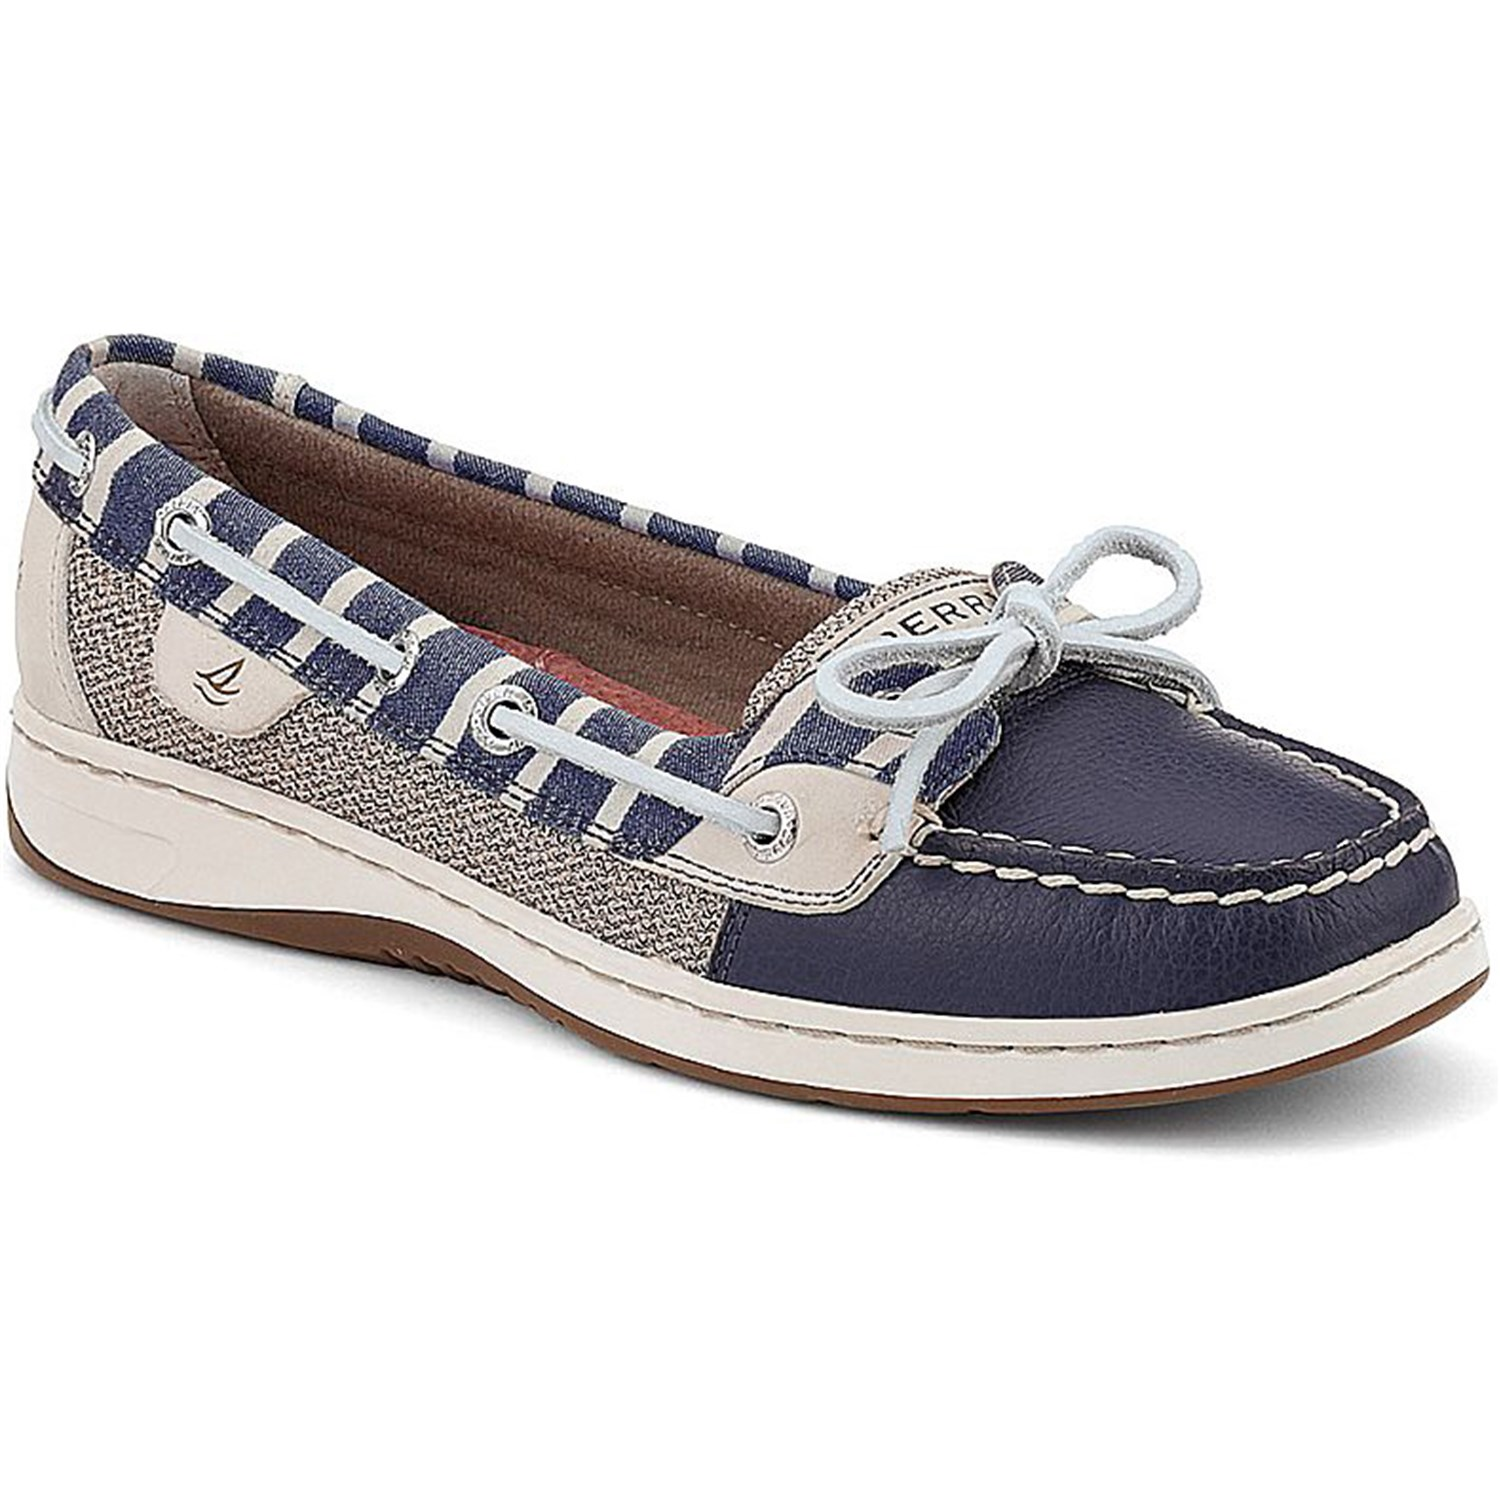 Sperry Top-Sider Womens Ladies Shoes UK Size 3.5